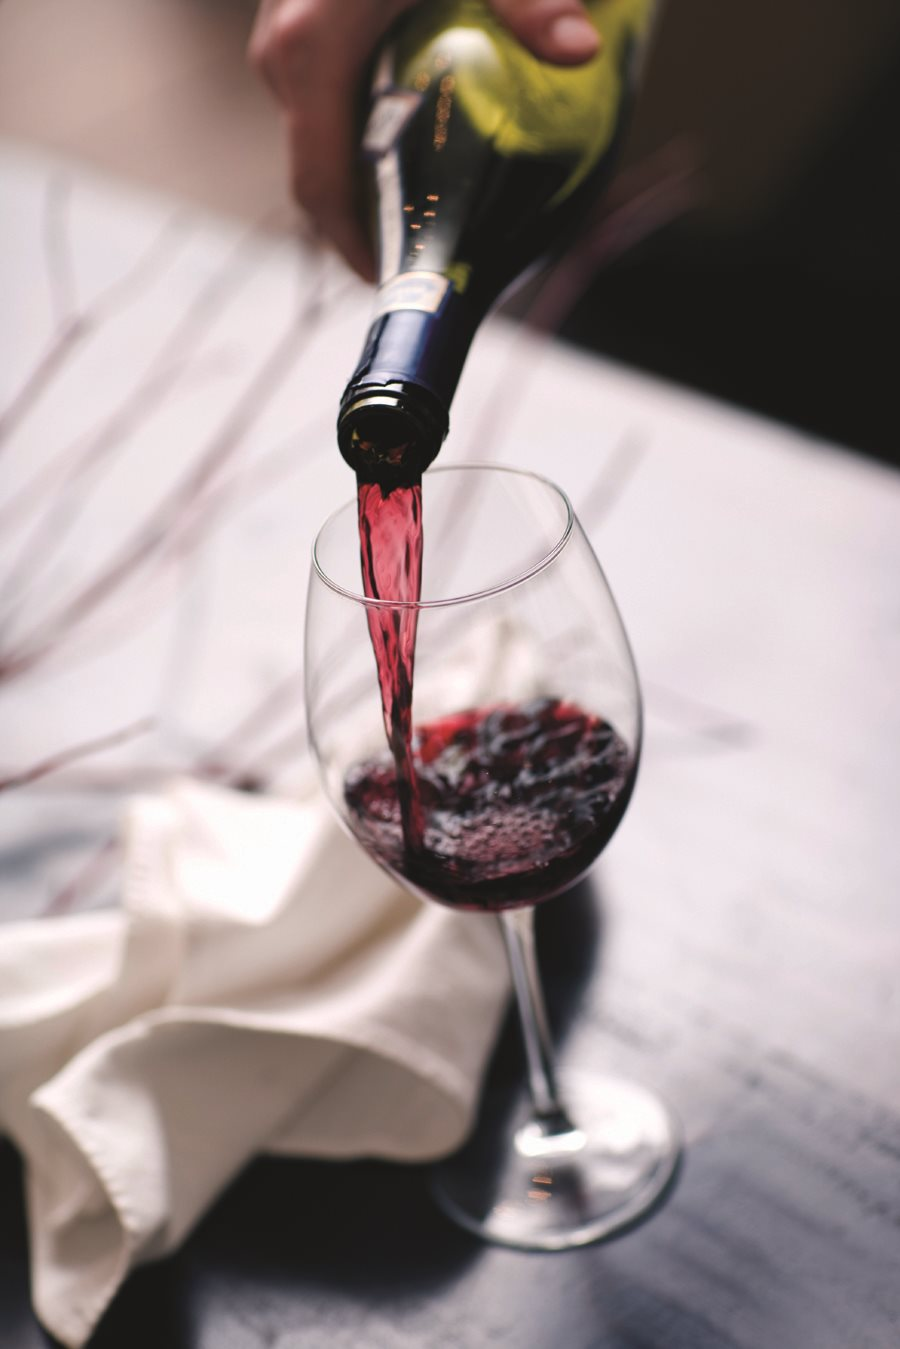 Connecticut Venues Named Among Best Wine Restaurants